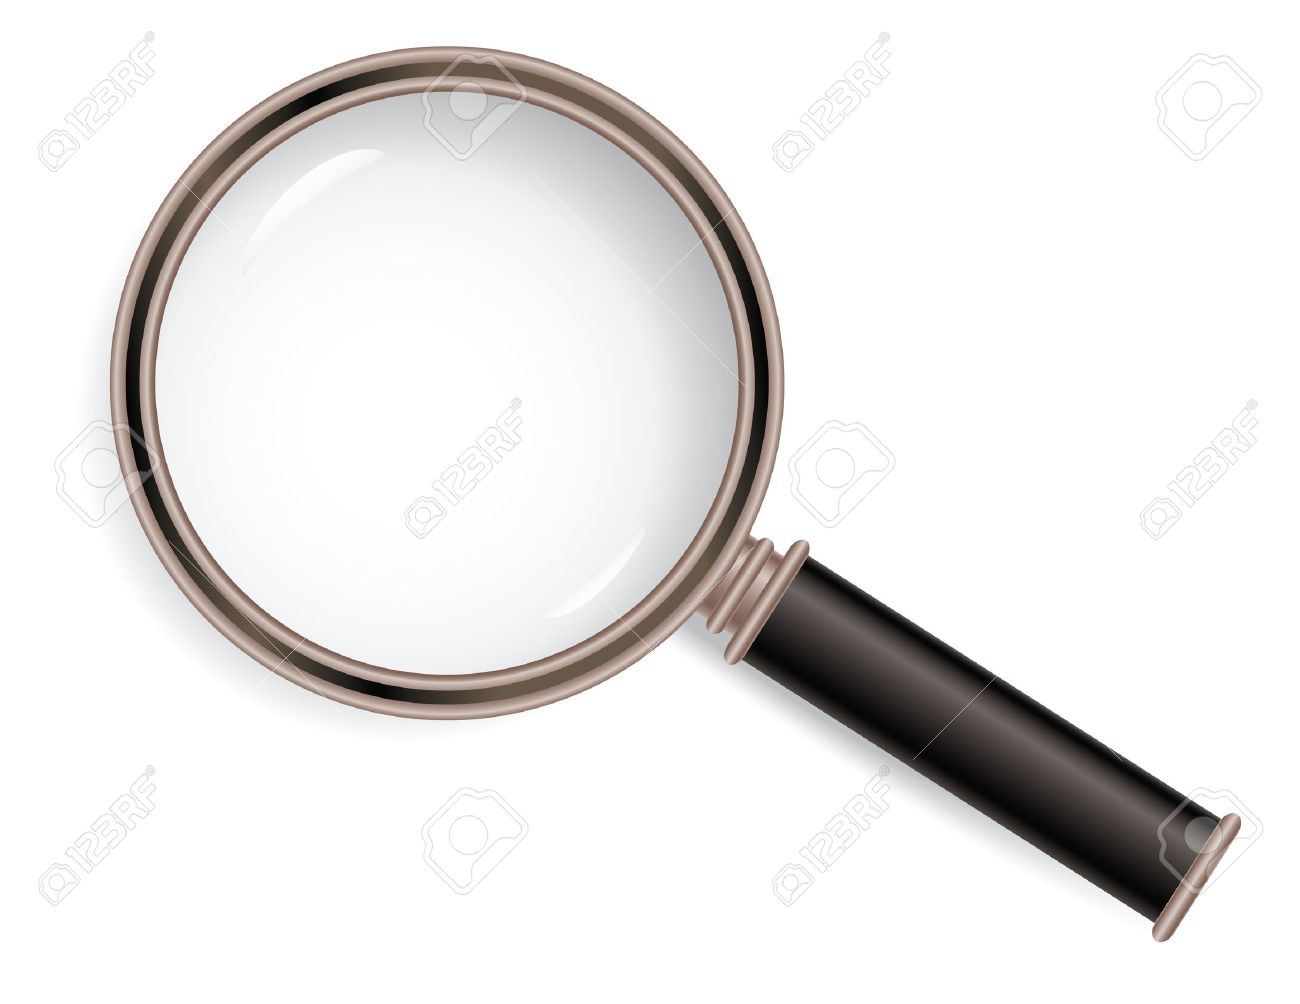 1300x1004 Old Style Magnifier Glass Isolated On White Background Royalty